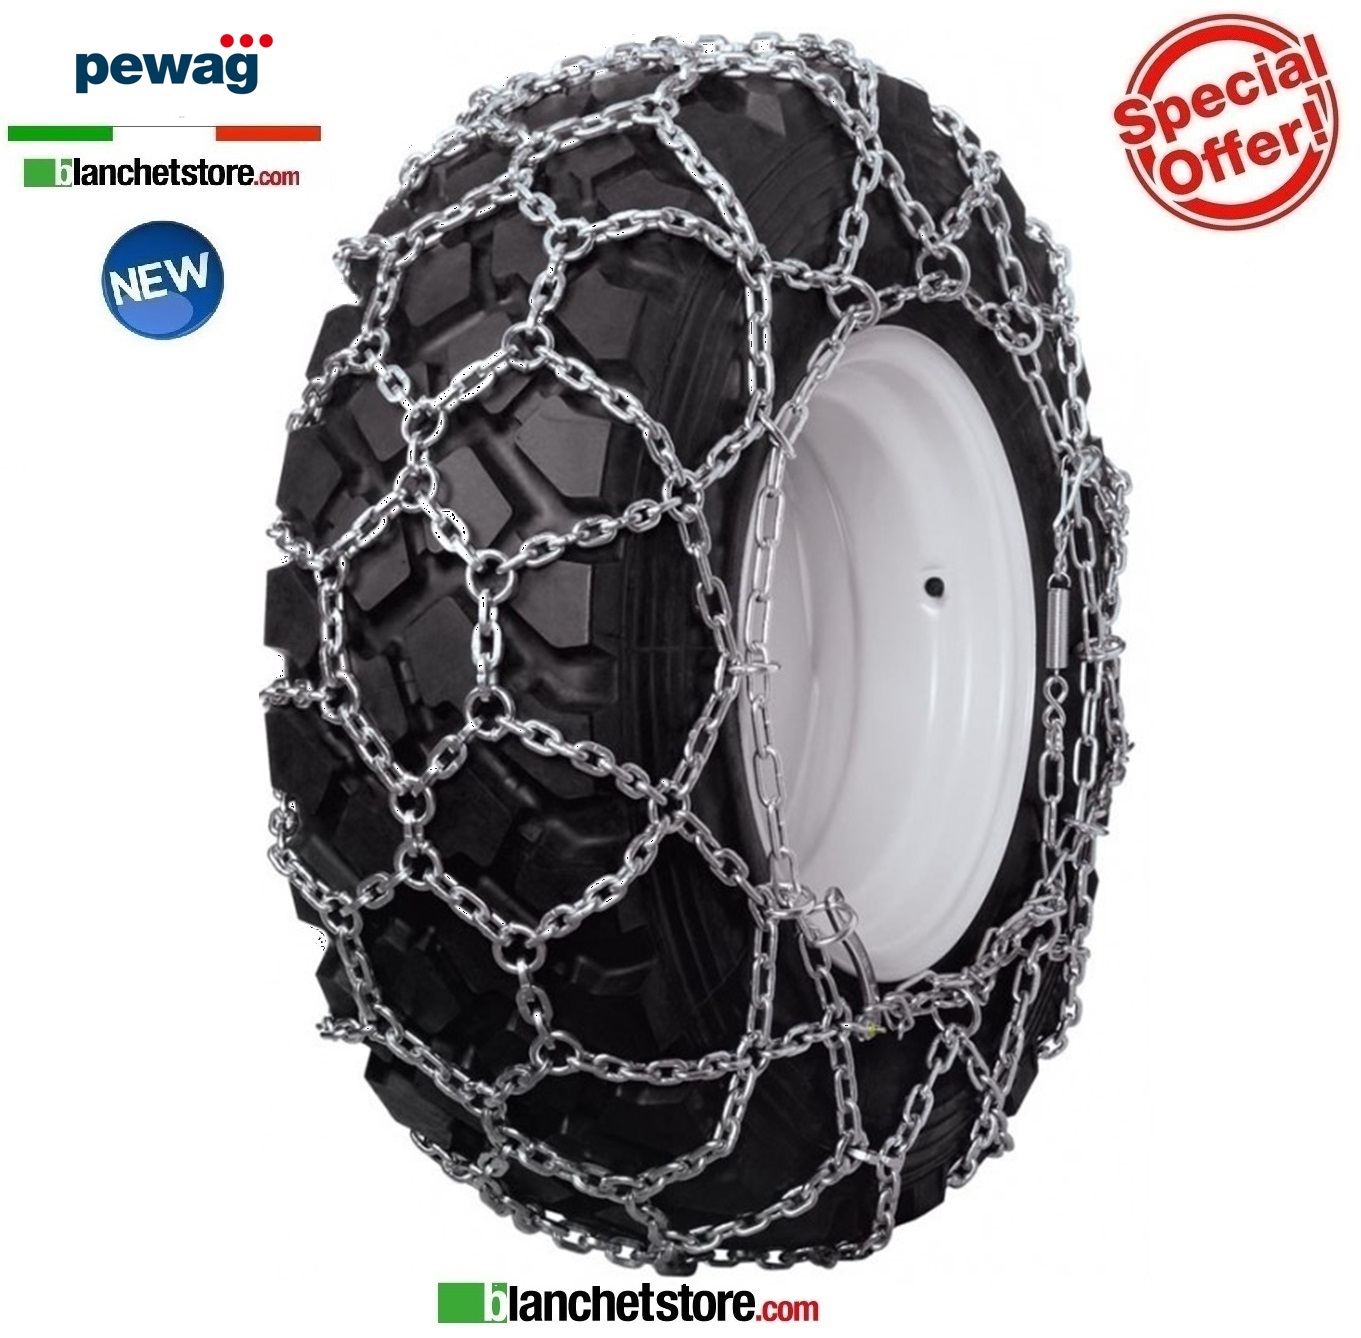 Chaines a neige PEWAG UNIVERSAL U 3645 pour tracteurs